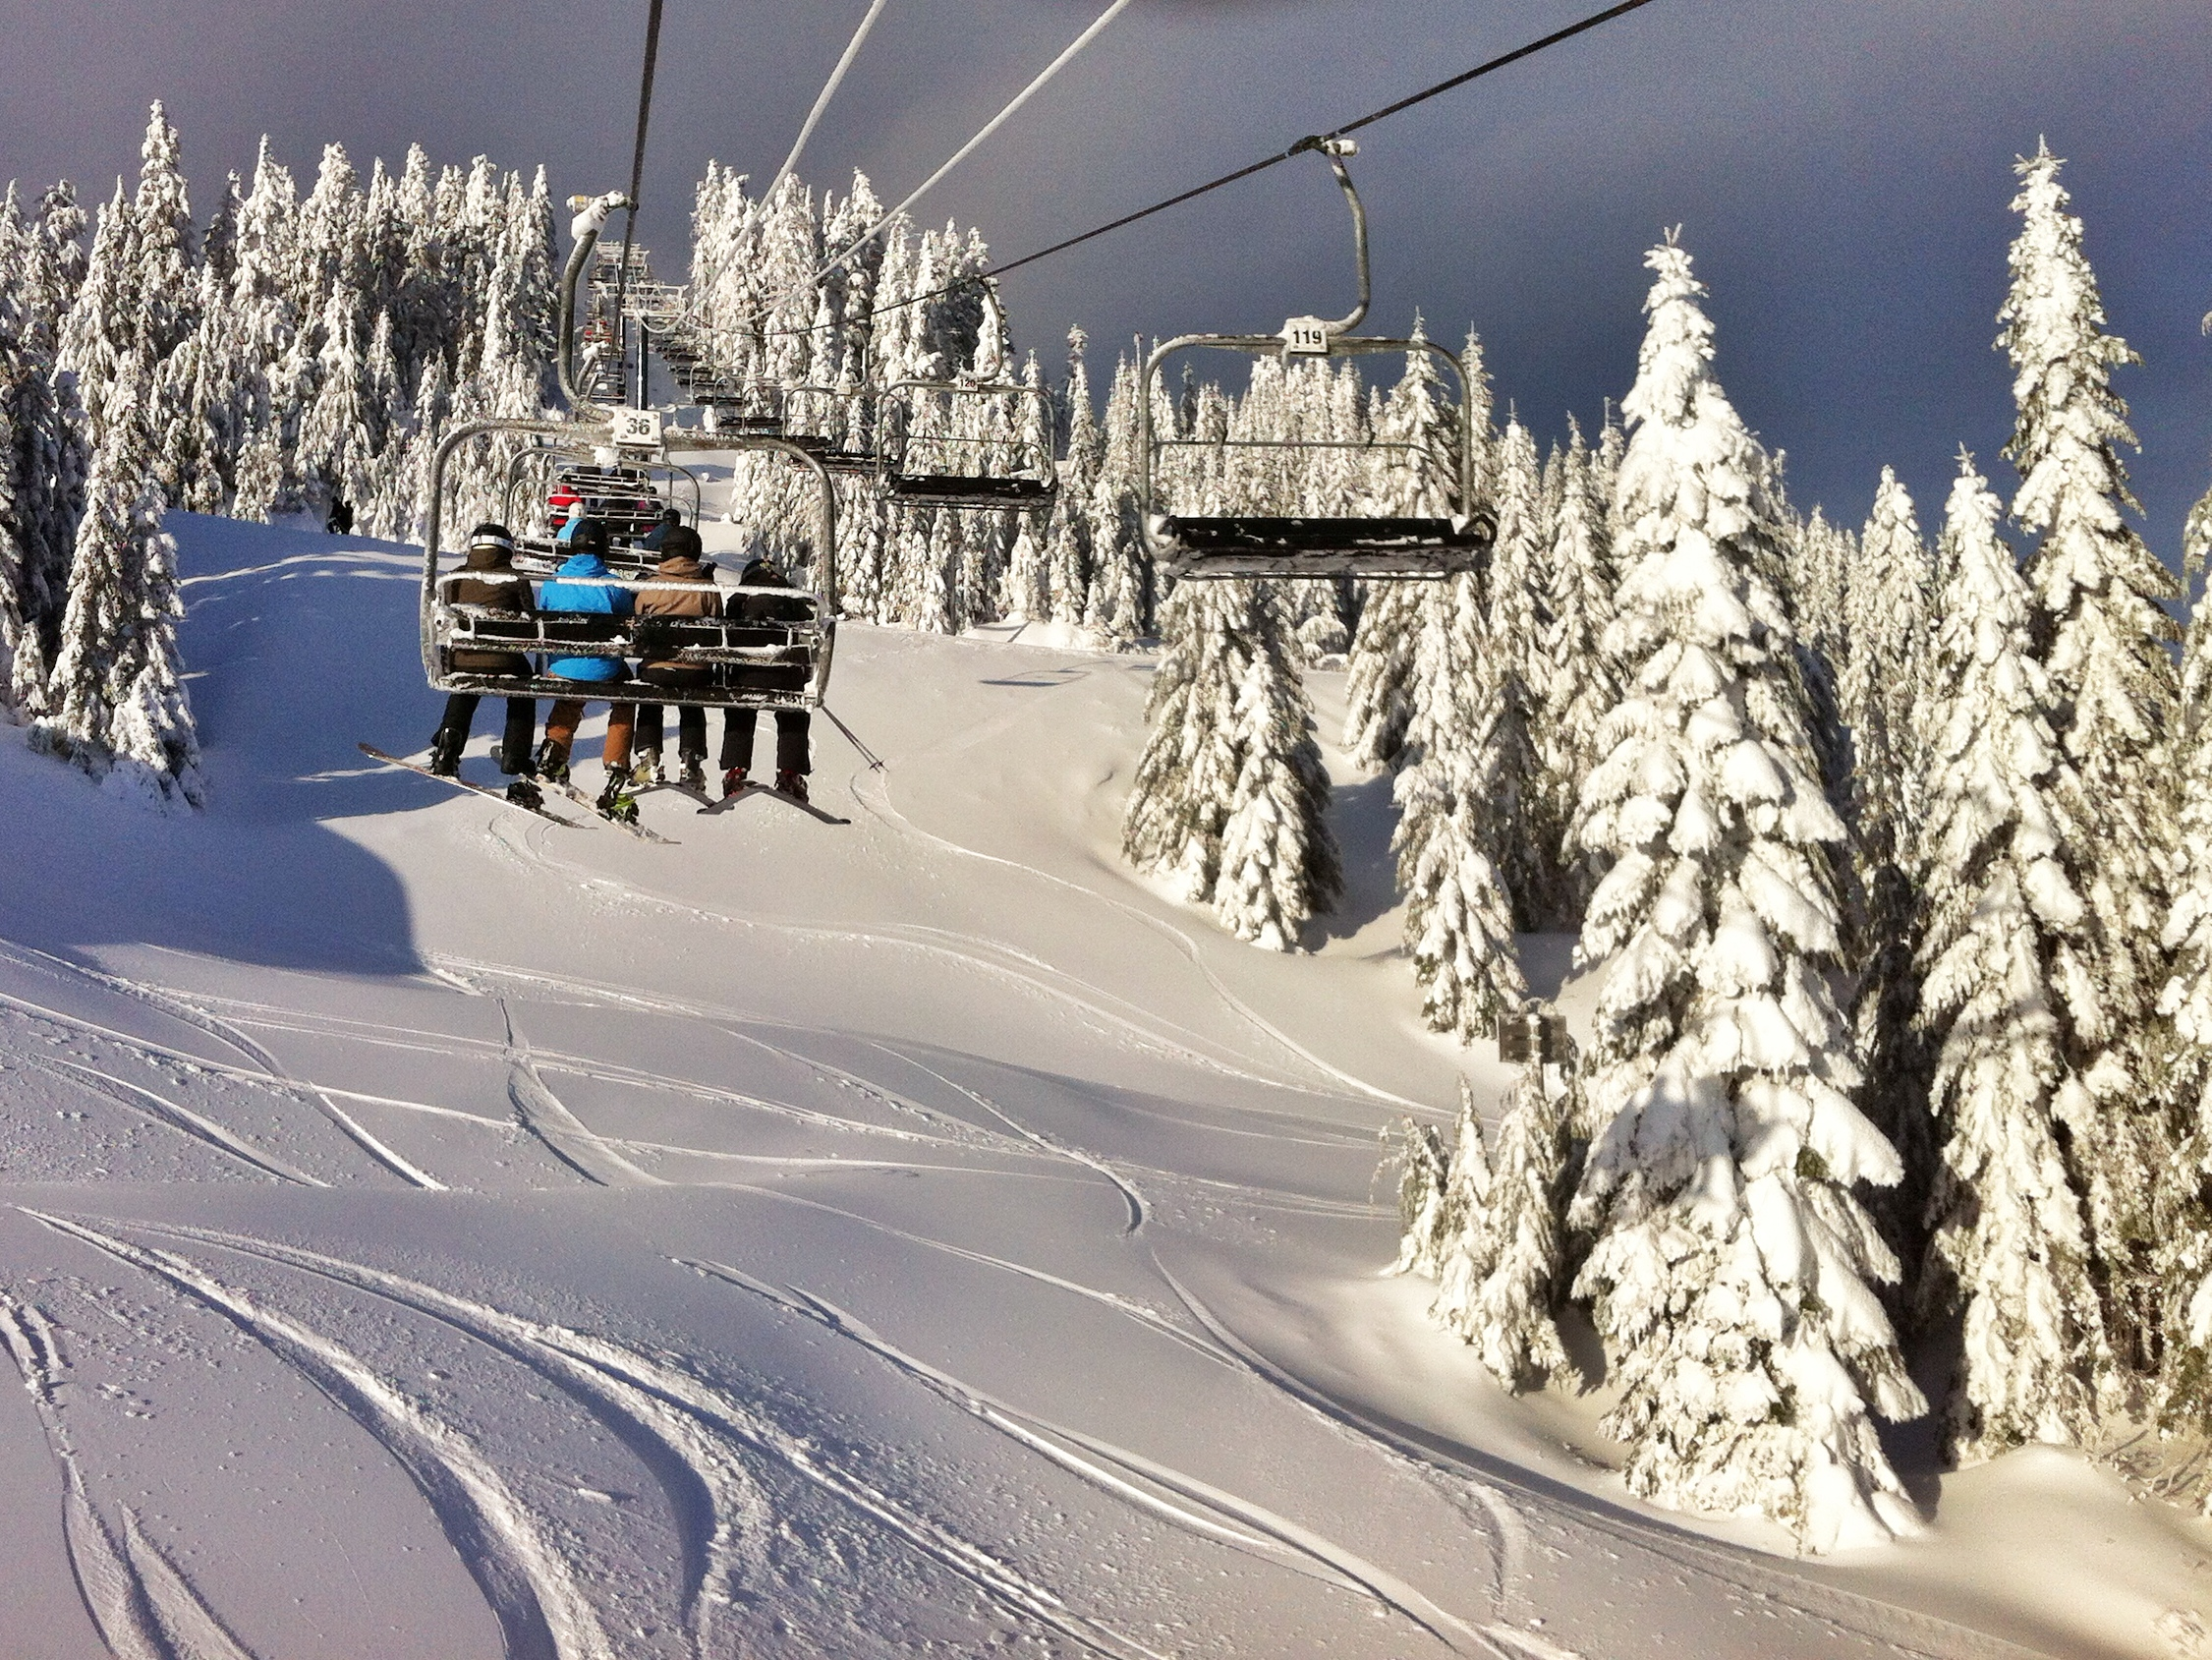 My quest to visit every ski resort in British Columbia